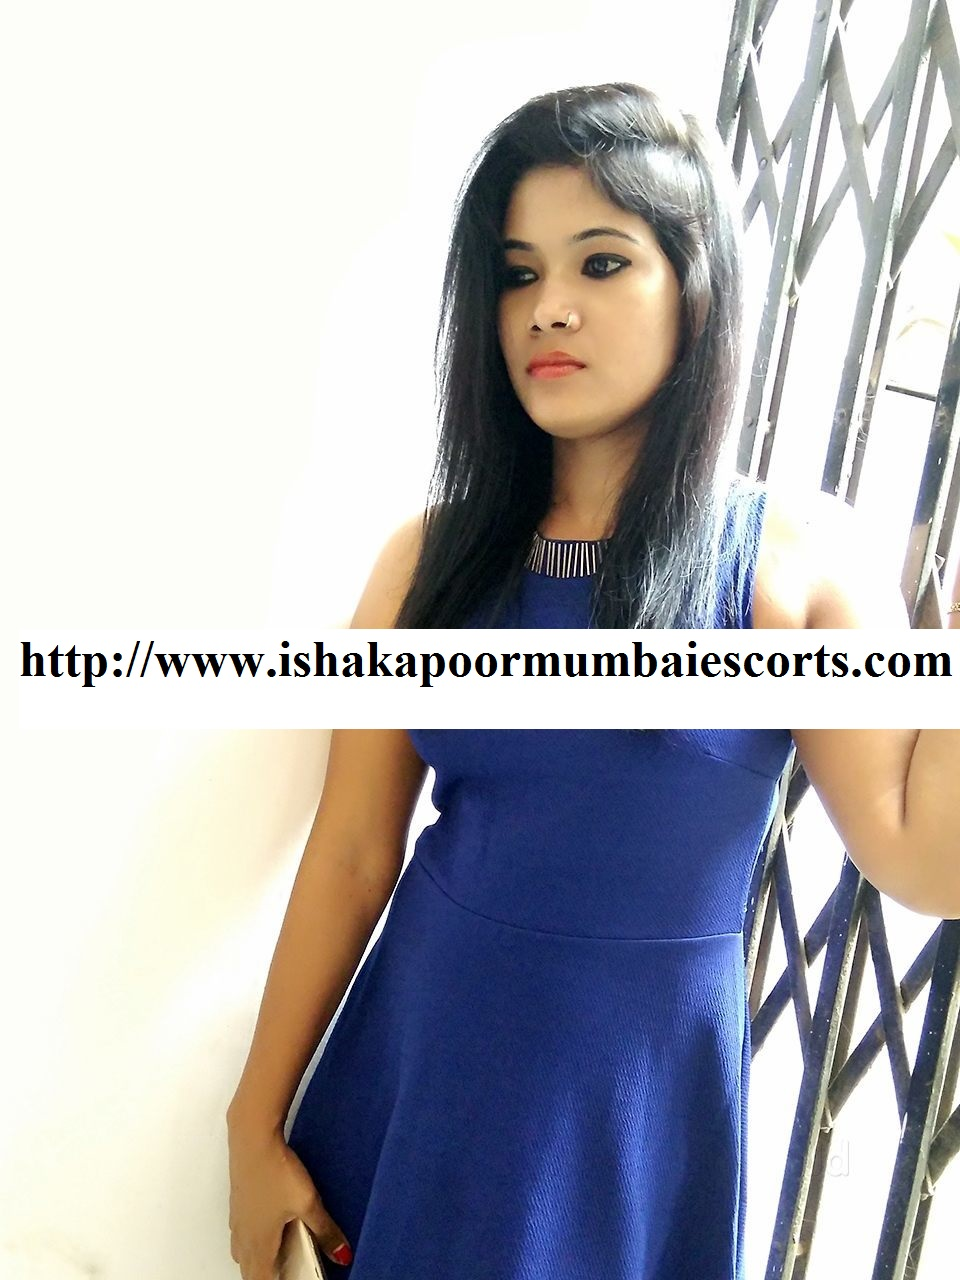 Ishakapoor , Mumbai escorts service | Call girls in Mumbai